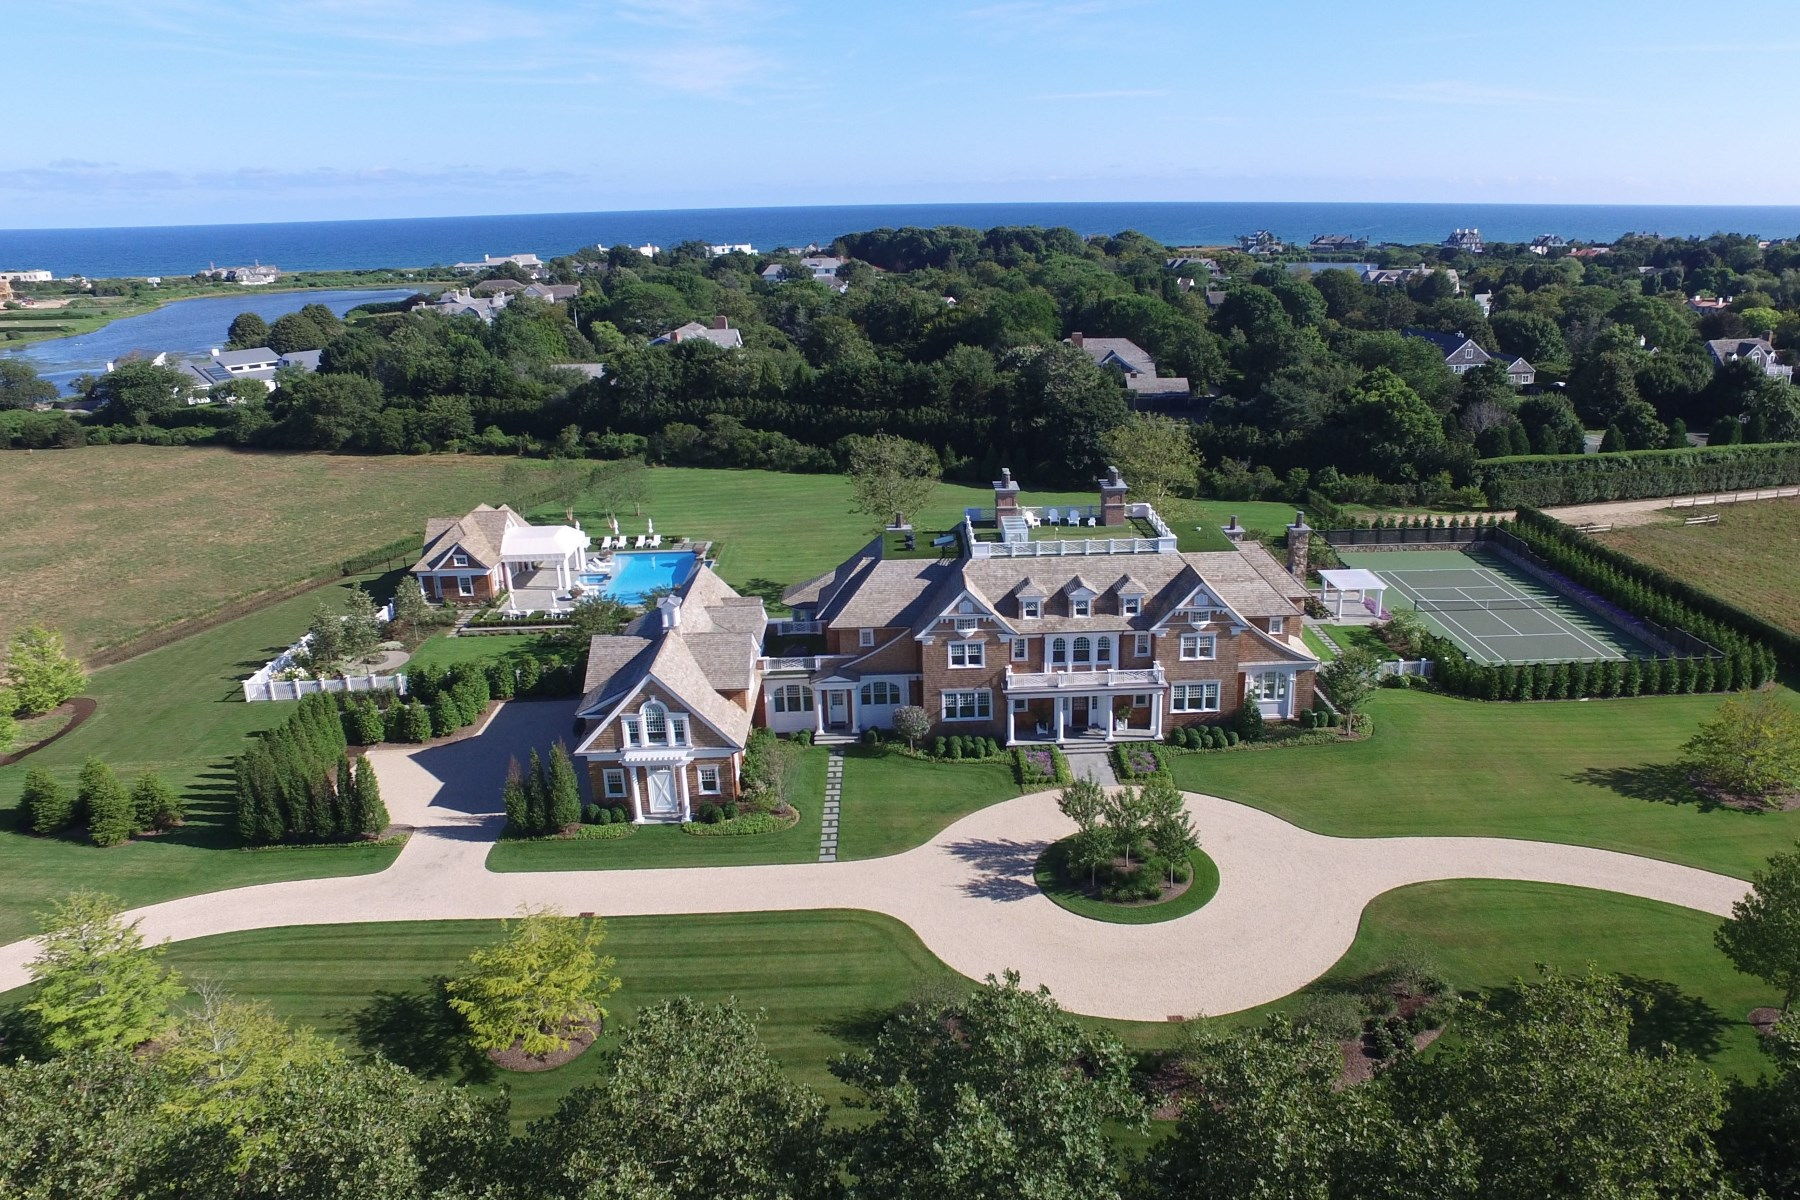 Single Family Home for Sale at Twin Peaks Luxury Estate 9 Olde Towne Lane, Southampton, New York, 11968 United States